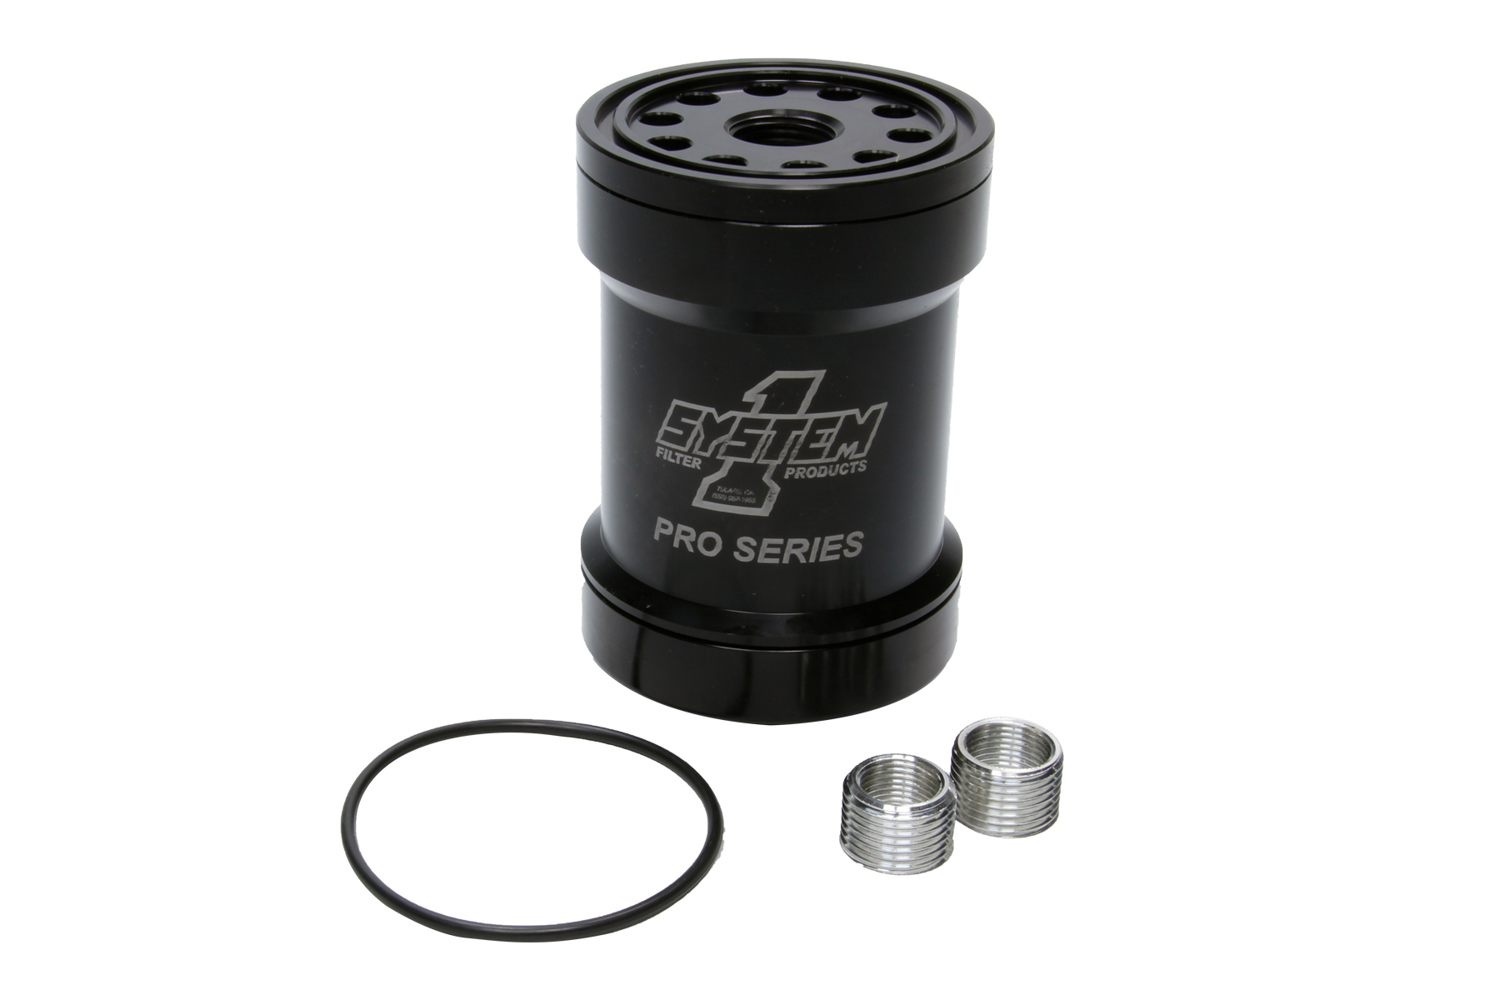 Billet Oil Filter w/Blt Cap 45 Micron - Black